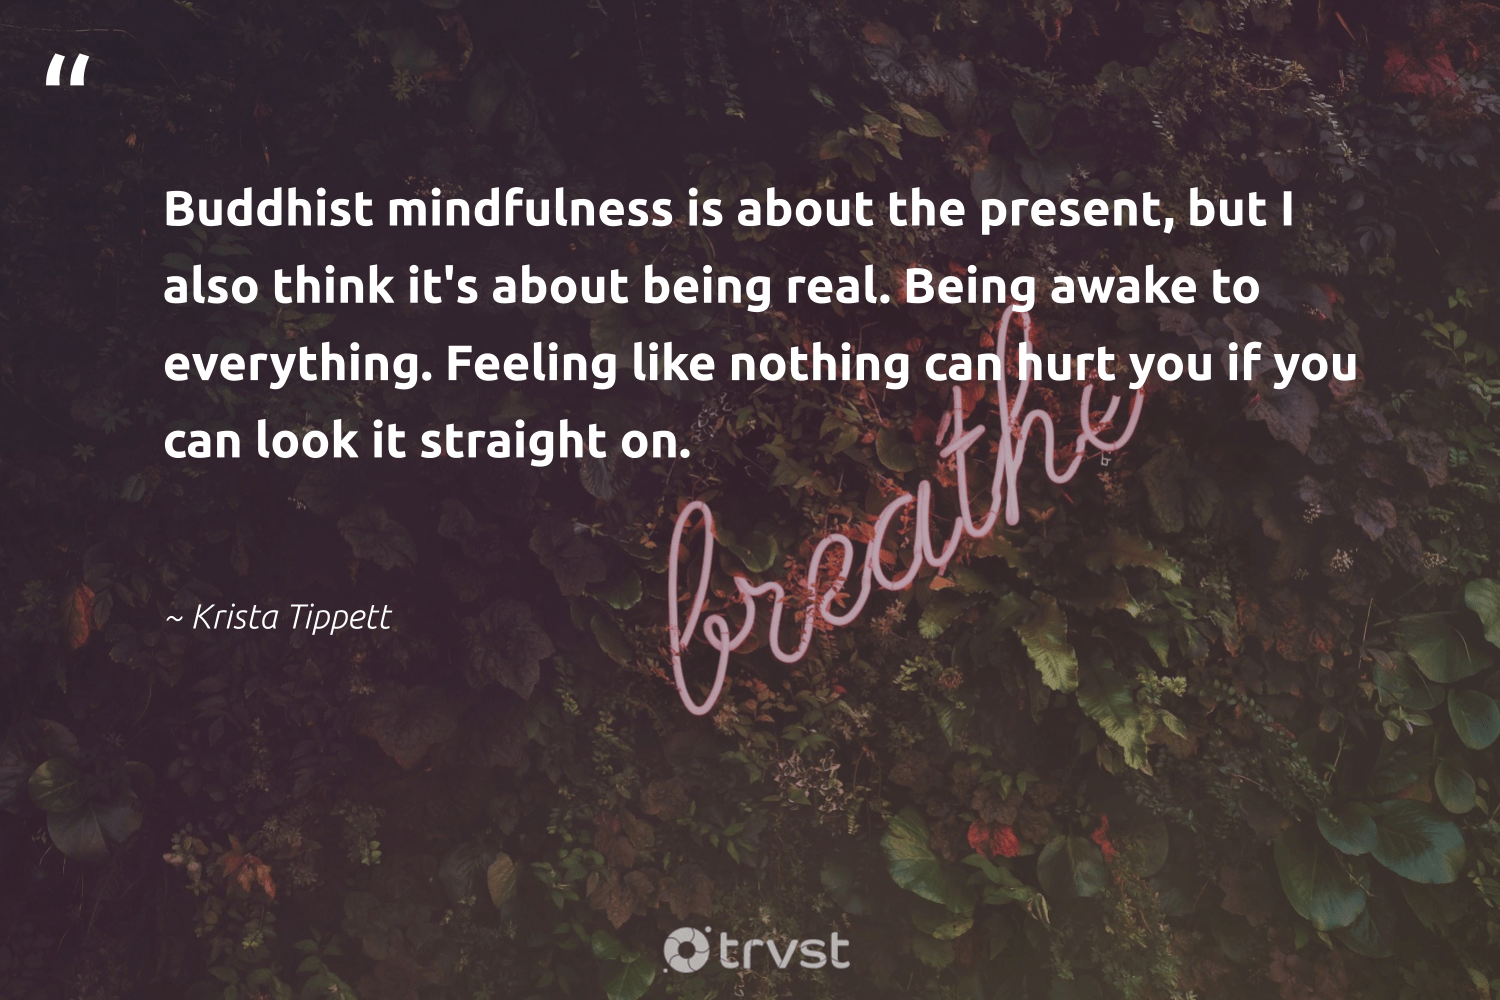 """""""Buddhist mindfulness is about the present, but I also think it's about being real. Being awake to everything. Feeling like nothing can hurt you if you can look it straight on.""""  - Krista Tippett #trvst #quotes #mindfulness #meditation #mindful #begreat #impact #goals #wellness #health #socialimpact #creativemindset"""